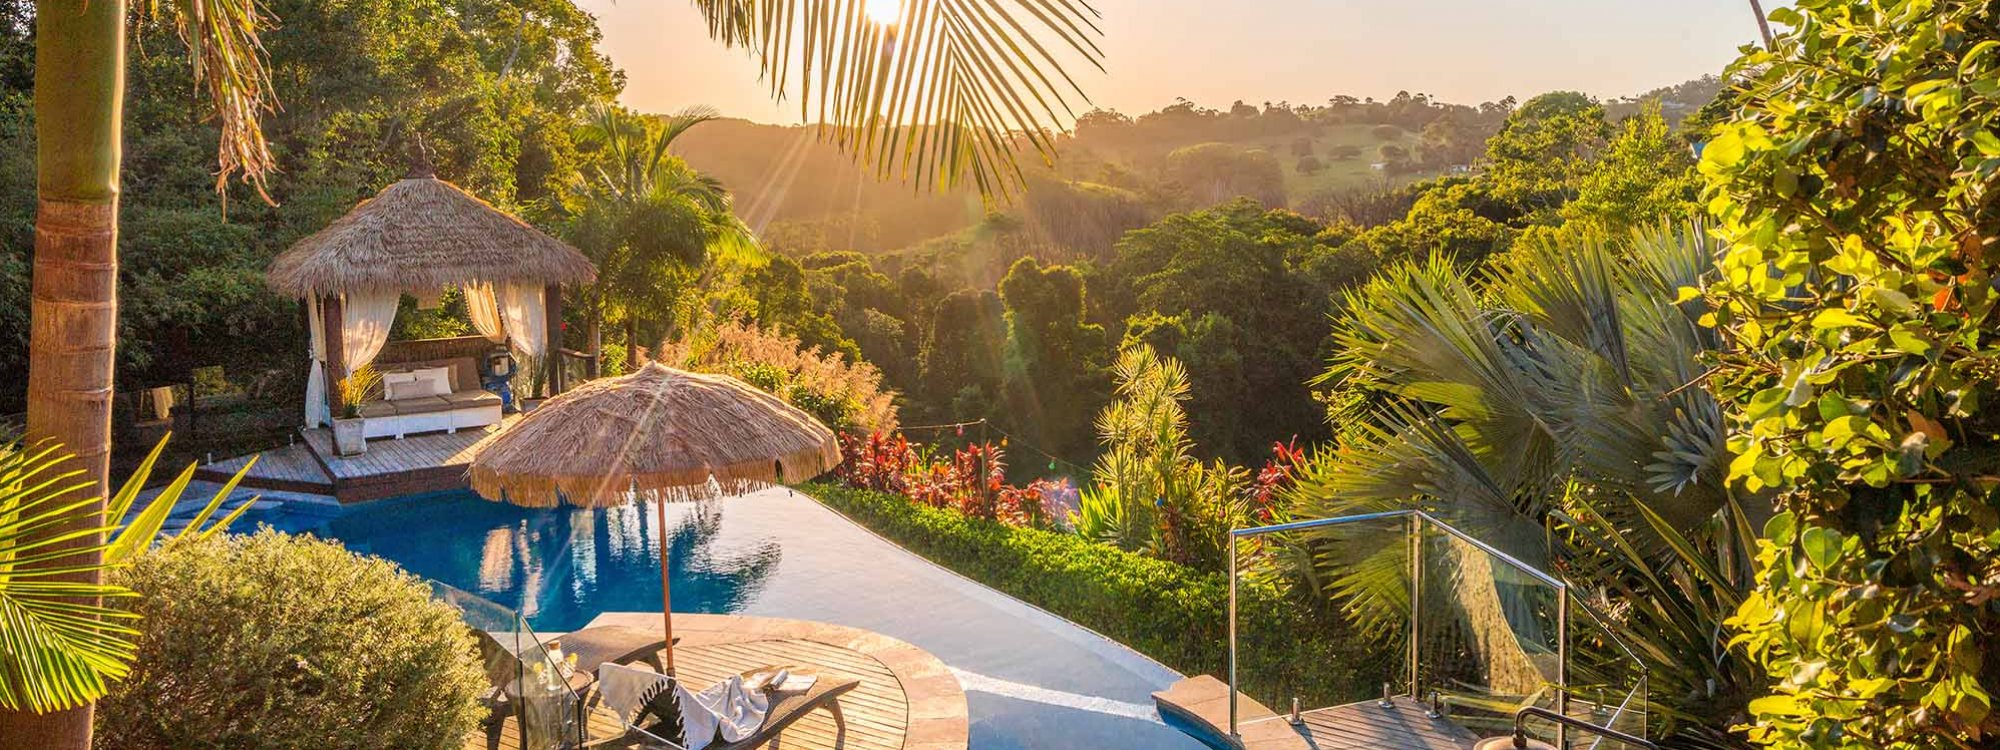 A Coorabell Retreat - Byron Bay - Pool at Sunset